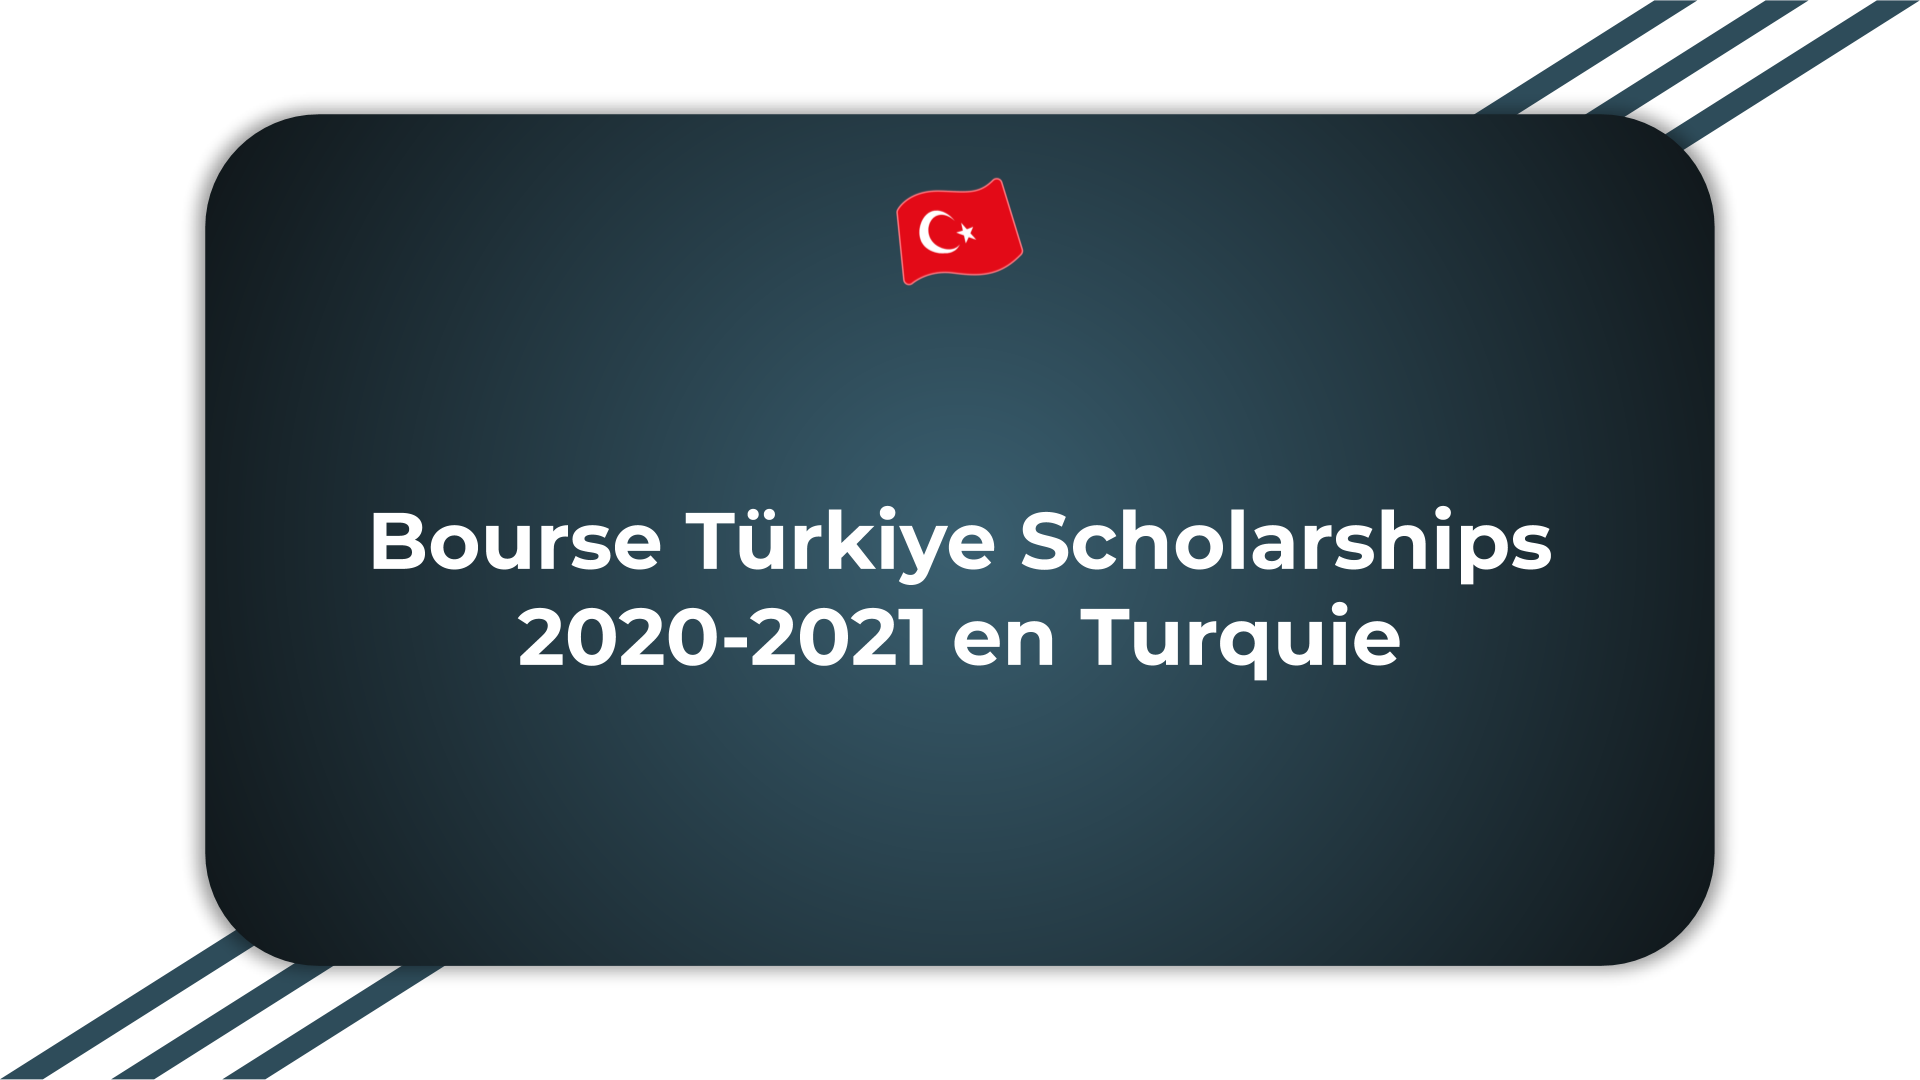 Bourse Türkiye Scholarships